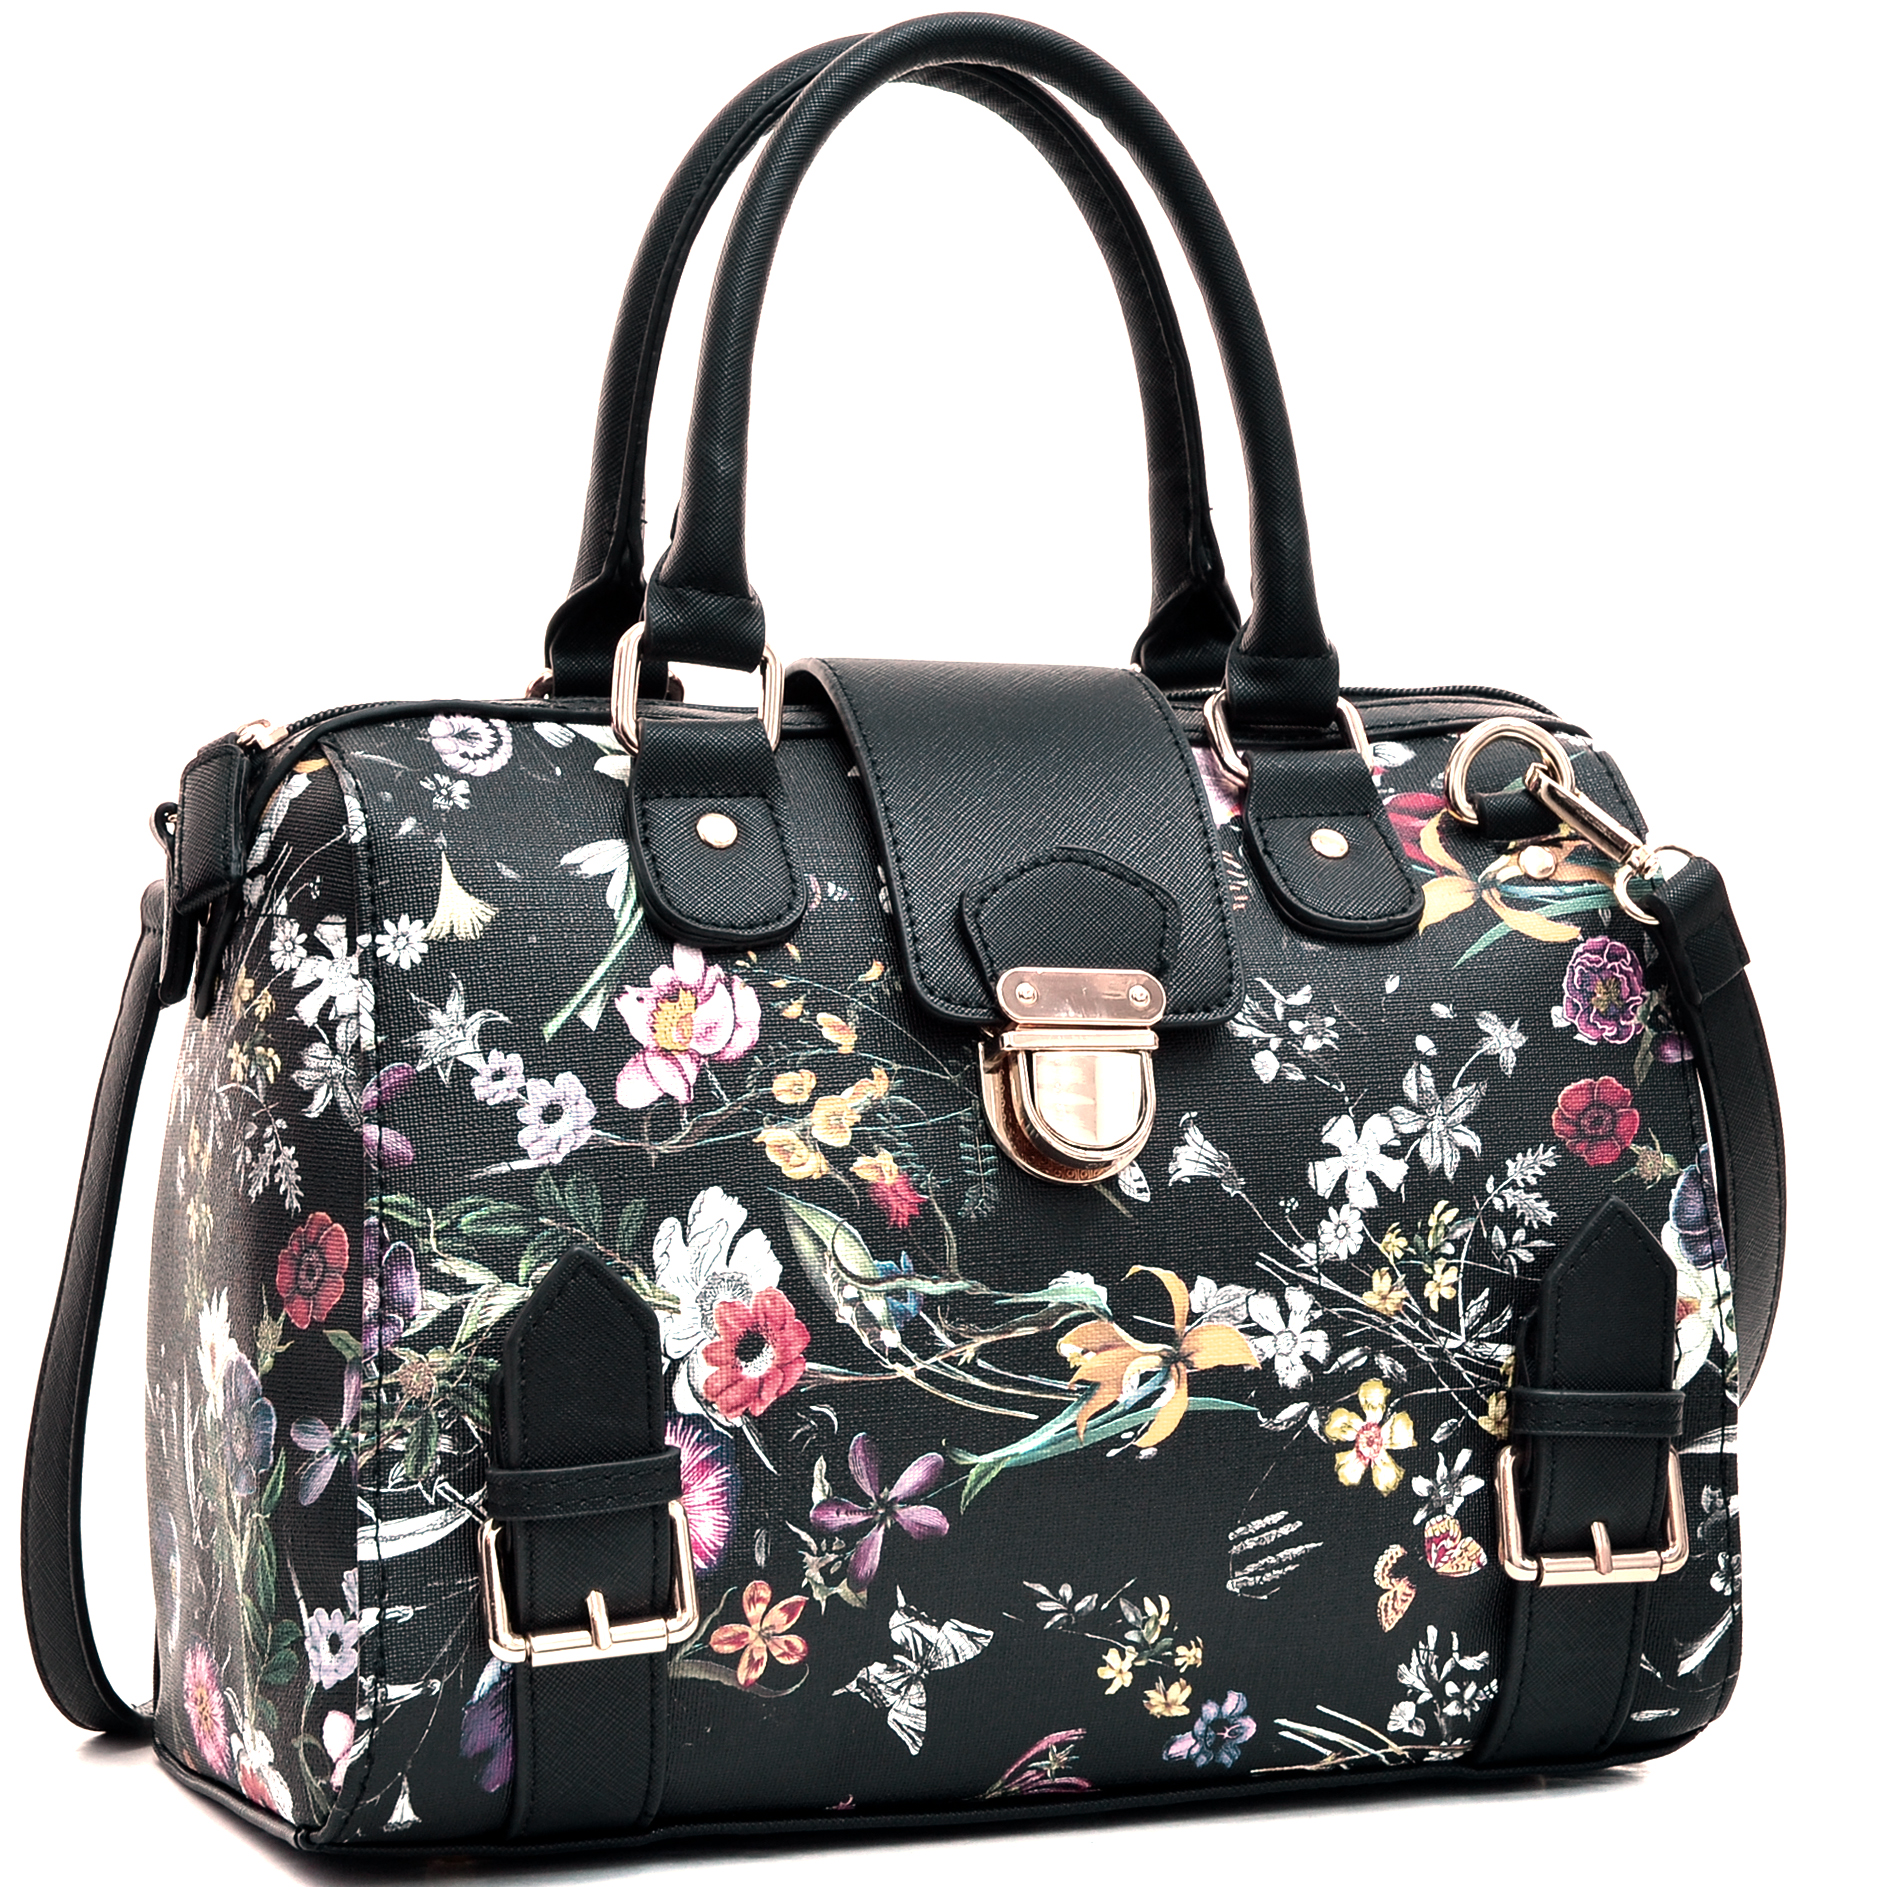 Floral Structured Satchel with Zip Top Closure